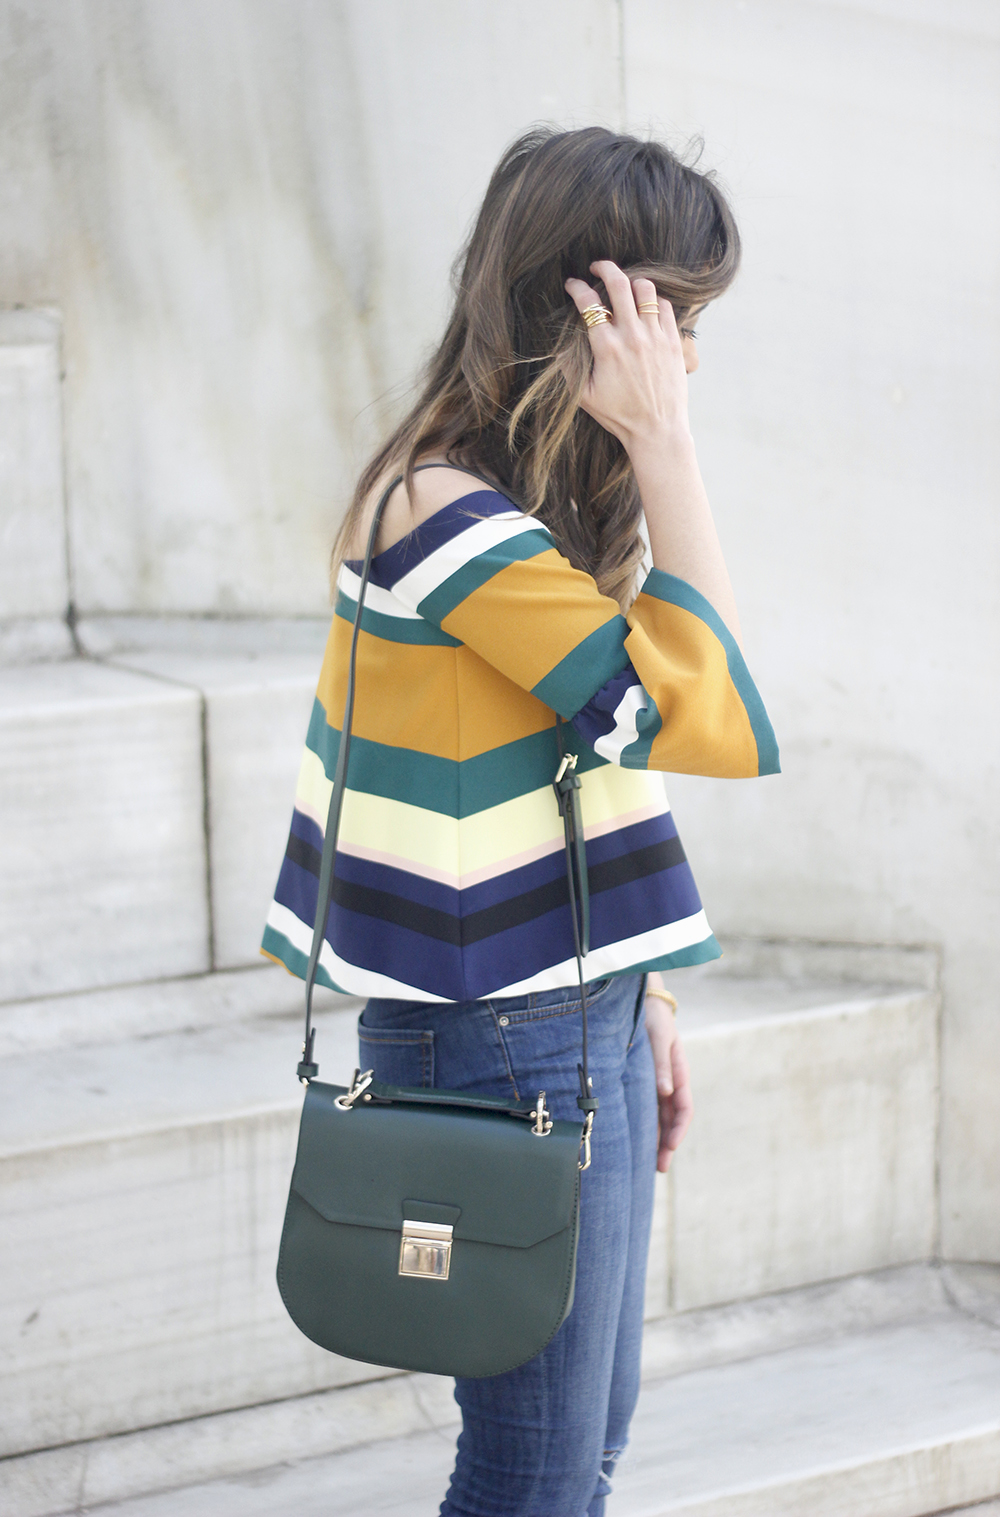 Off The Shoulder Top with stripes jeans heels accessories bag aristocrazy05